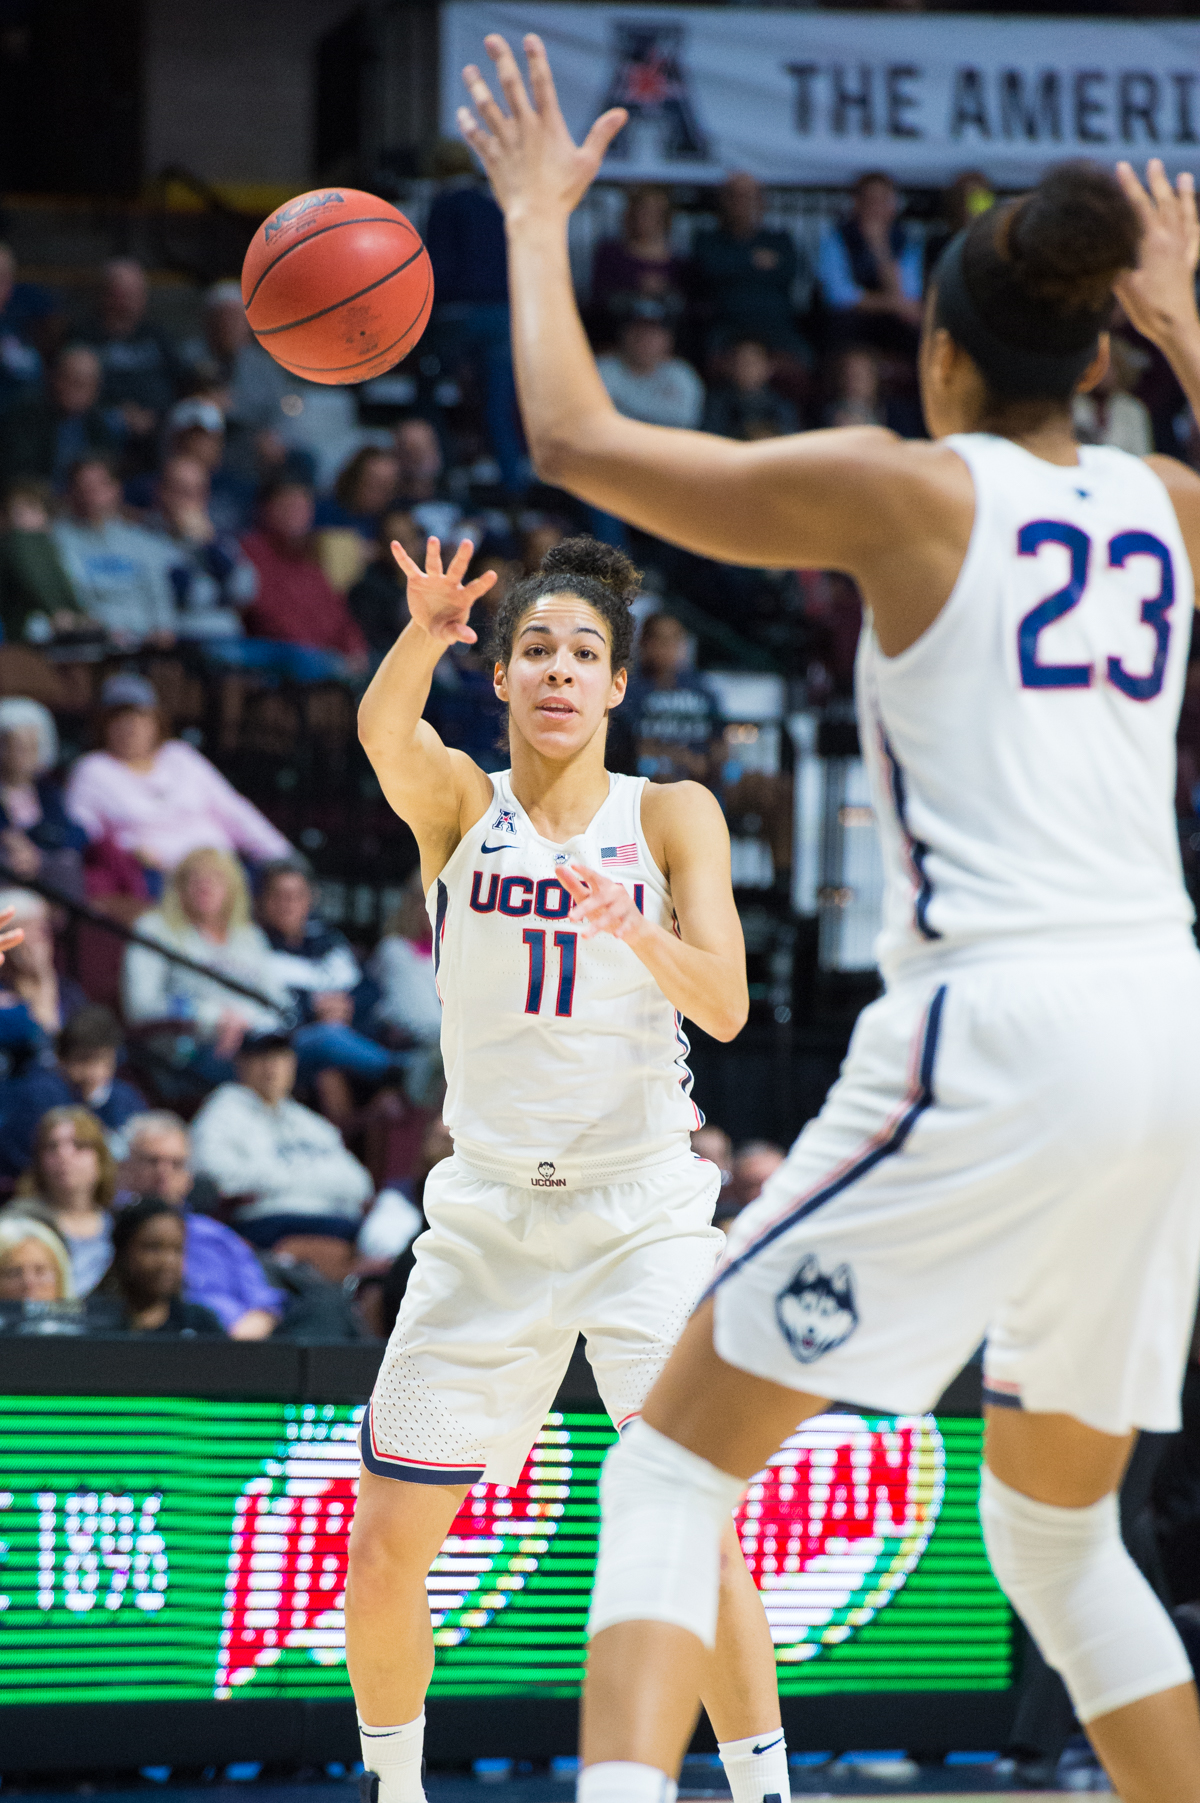 UConn Womens Basketball vs Cincinnati #5329 March 06, 2018.jpg